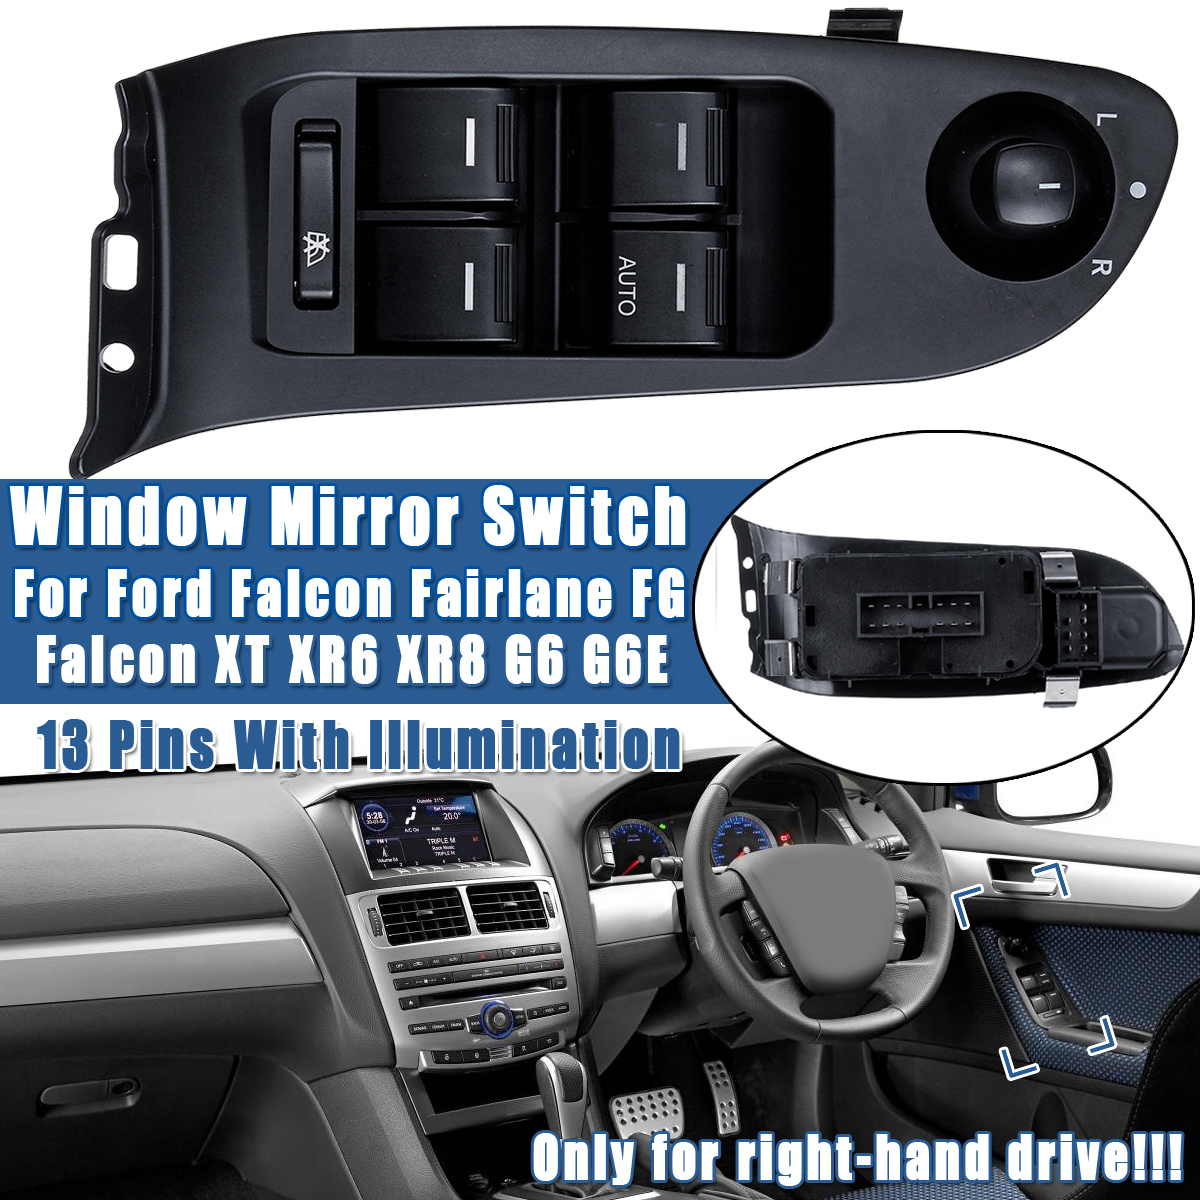 Window Mirror Switch Electric Power 12/13 Pins For Ford Falcon Fairlane FG Falcon XT XR6 XR8 G6 G6E only for right-hand drive